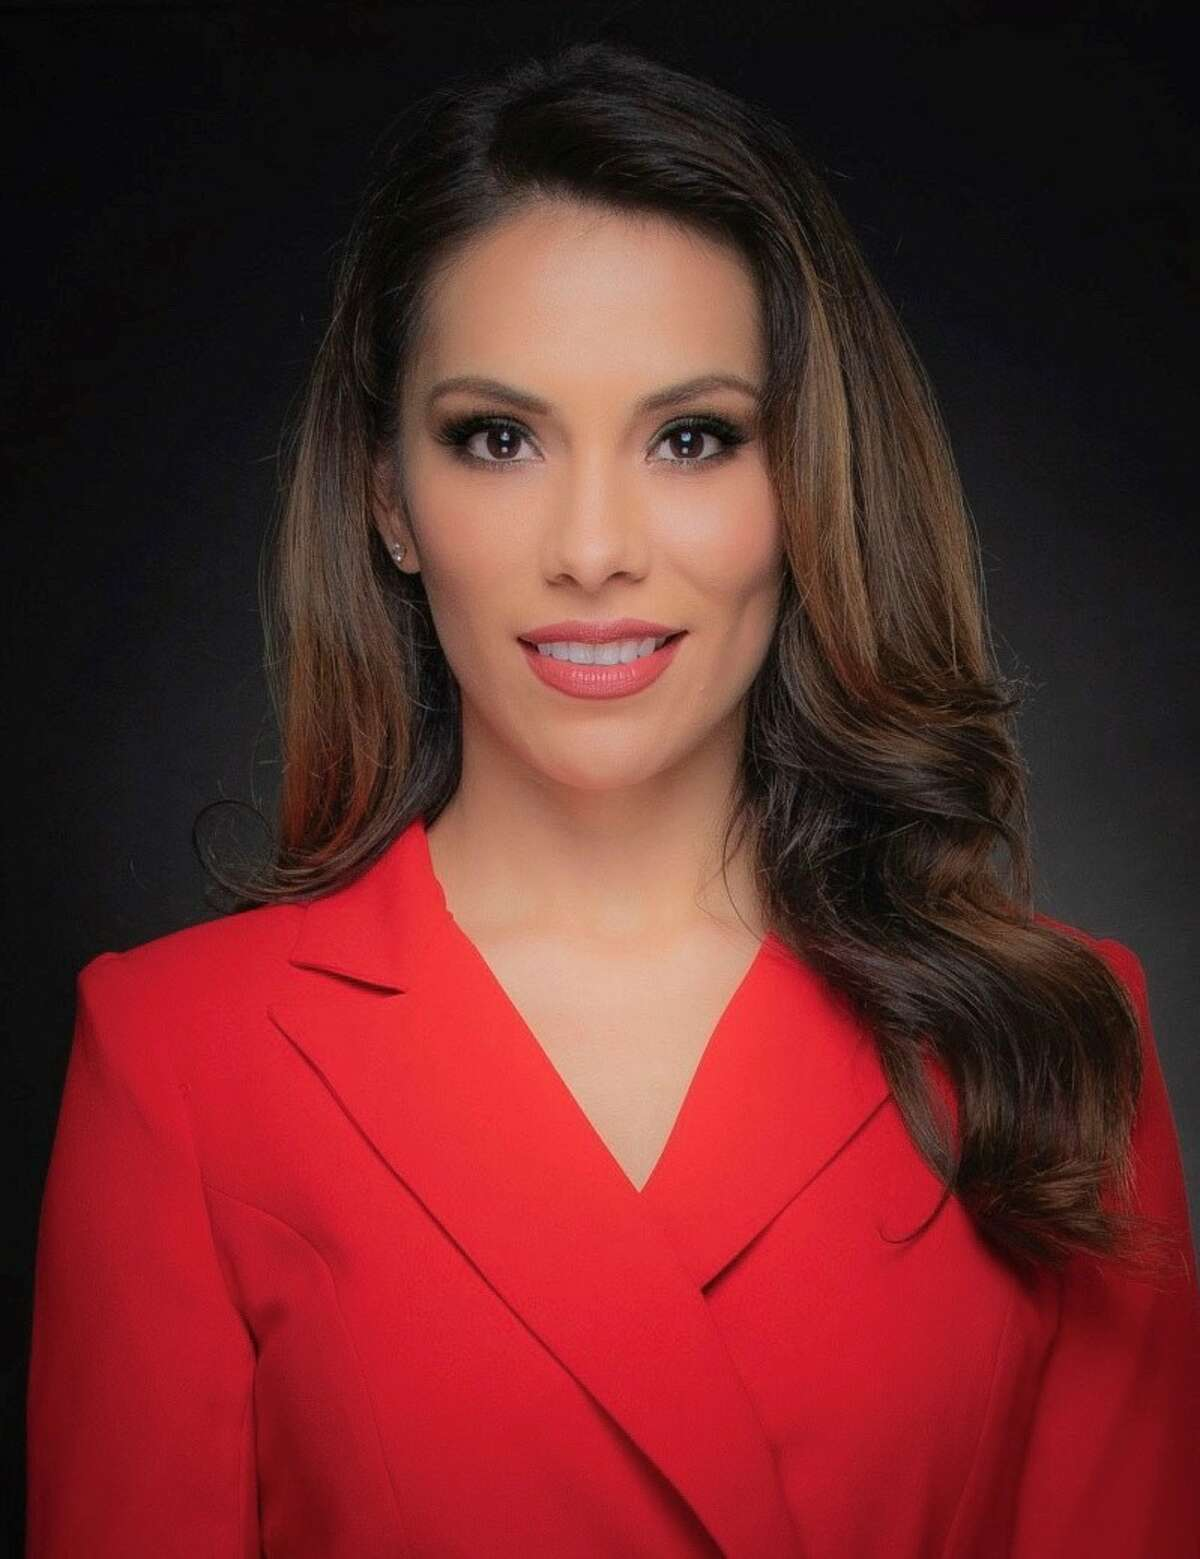 Mayde Gomez will be the new Fox San Antonio morning c0-anchor, the station announced earlier this week.